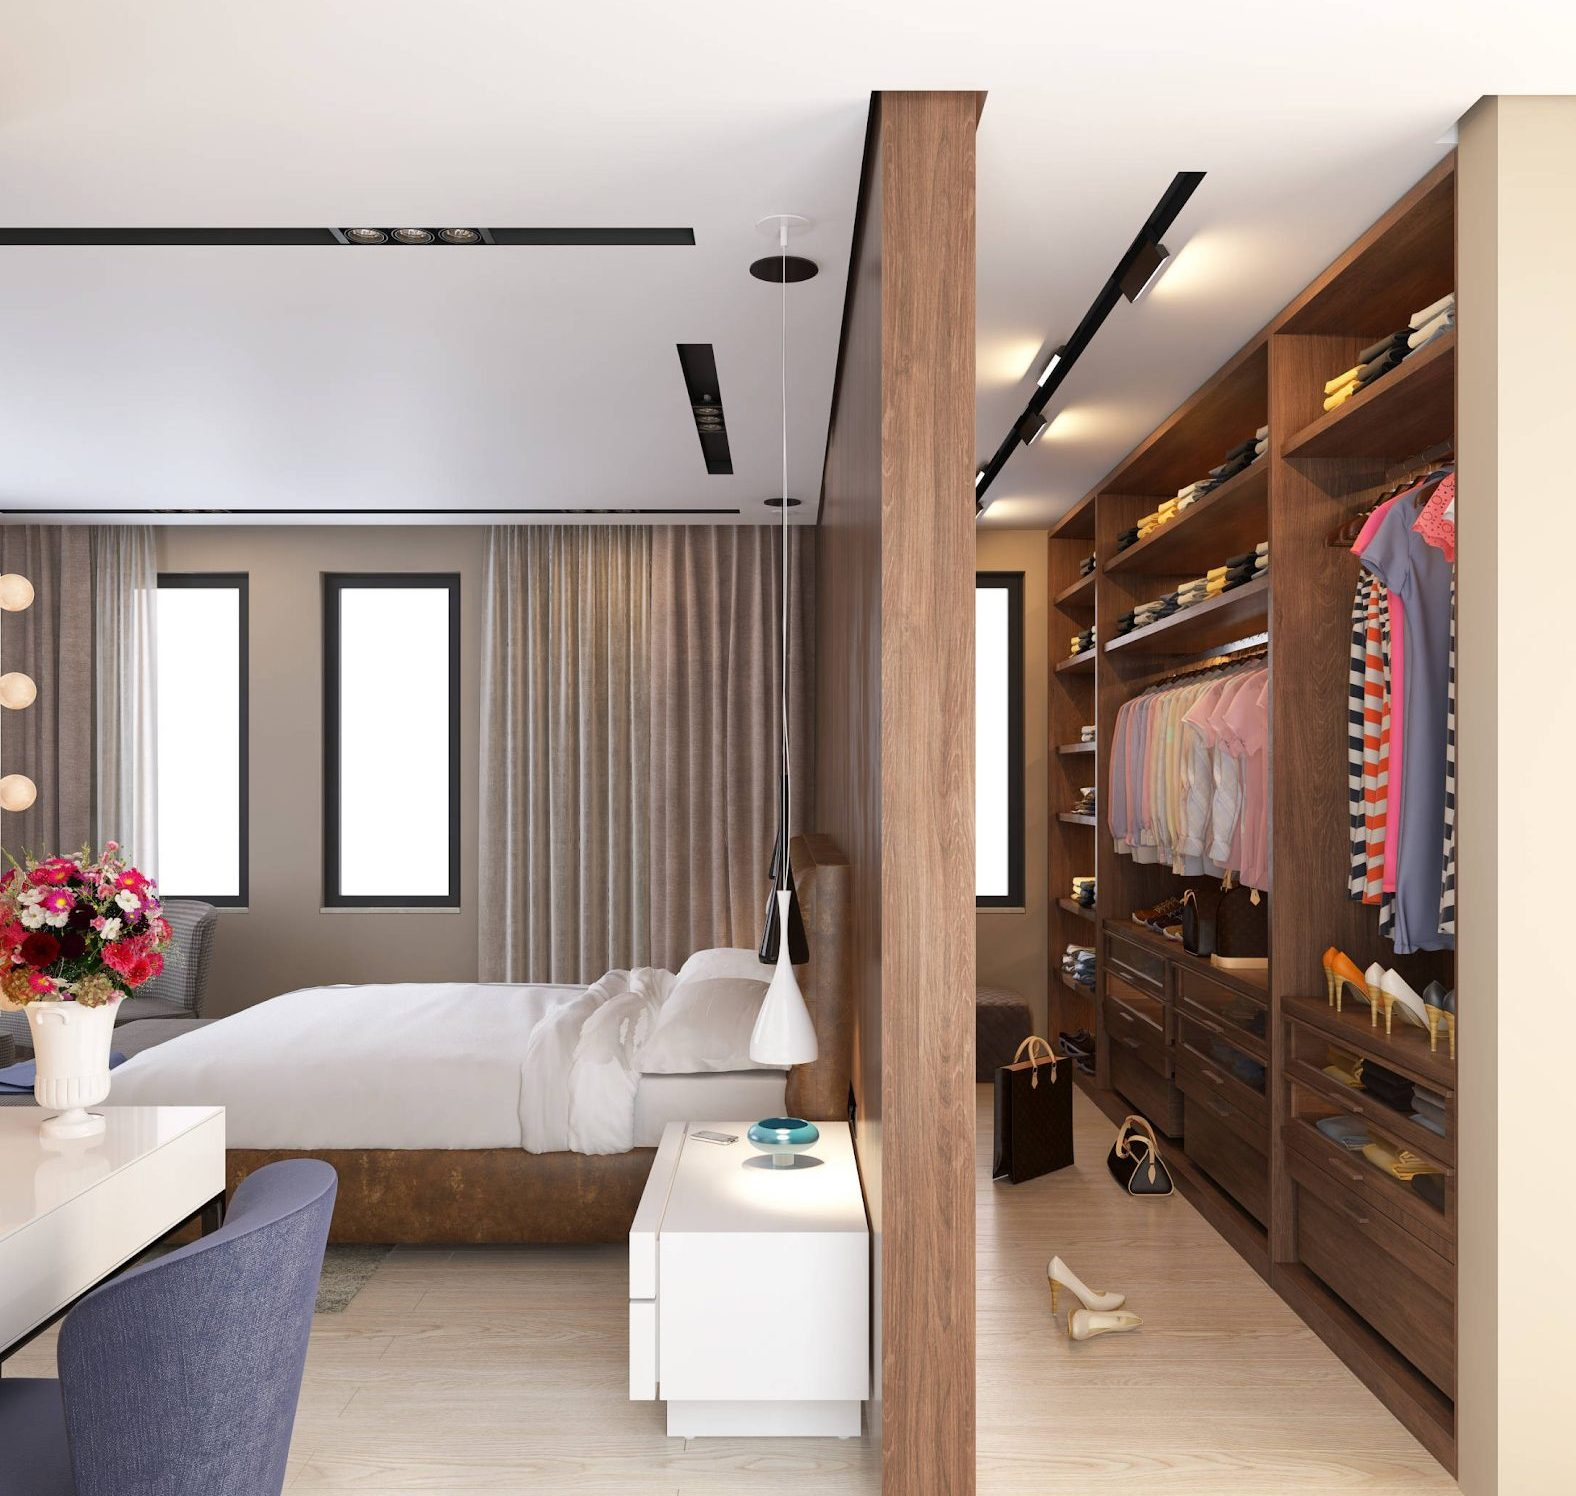 squarerooms-walk-in-closet-ideas-hdb-narrow-partition